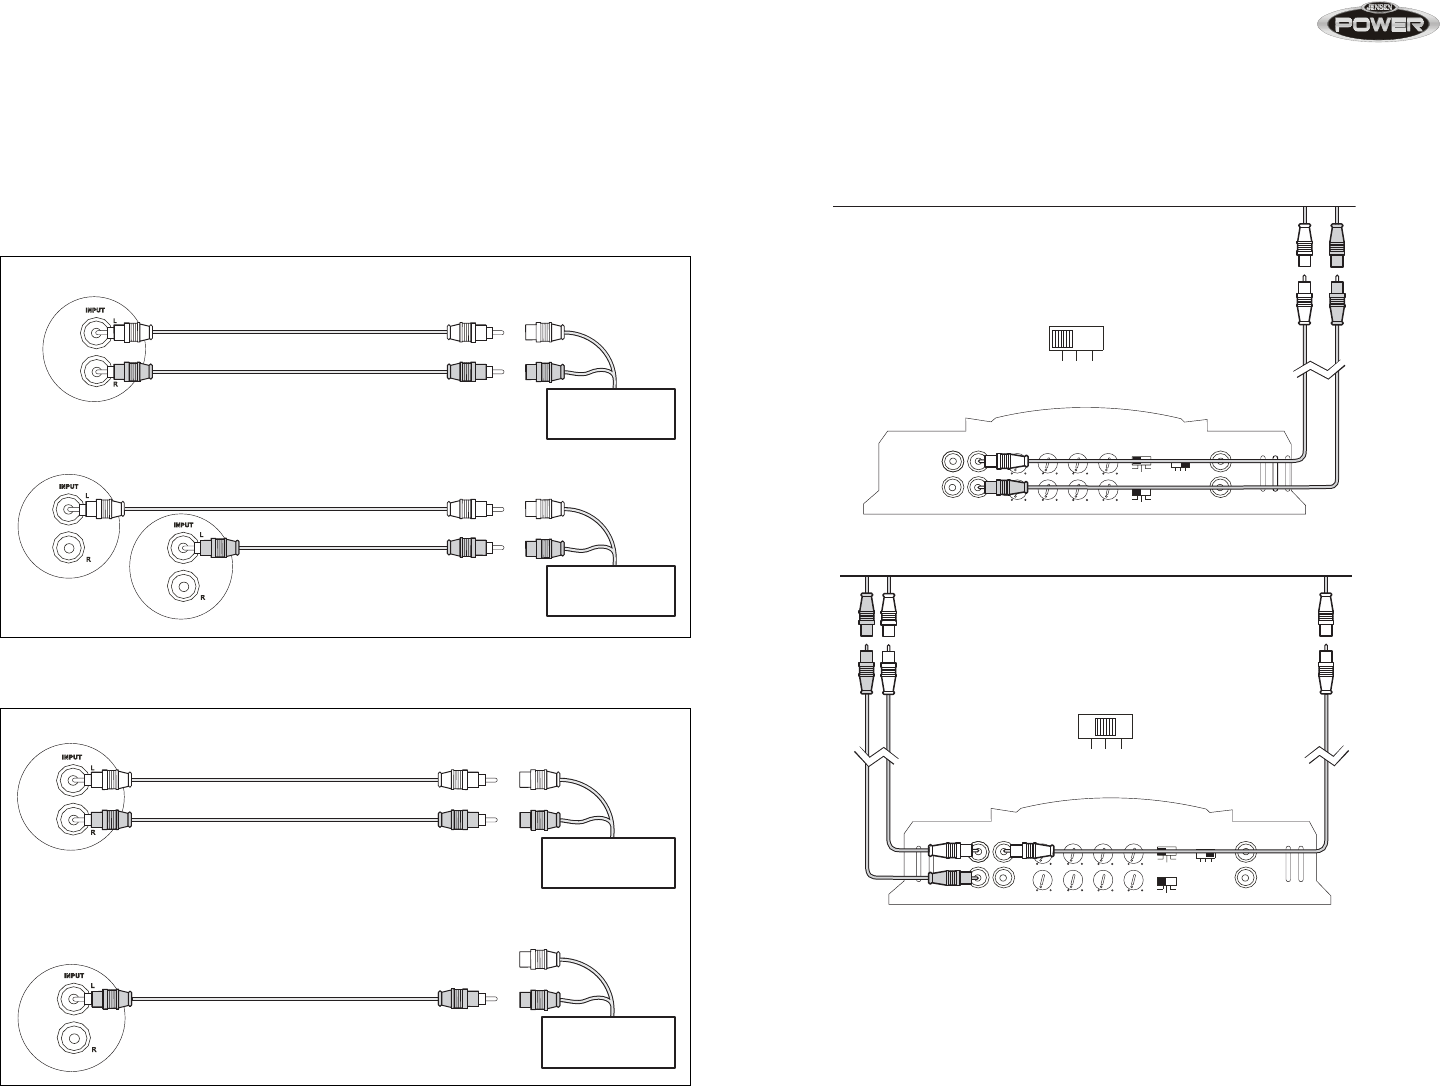 Jensen Phase Linear Uv10 Wiring Harness Solutions Diagram 400 Amp Residential Electrical Symbols